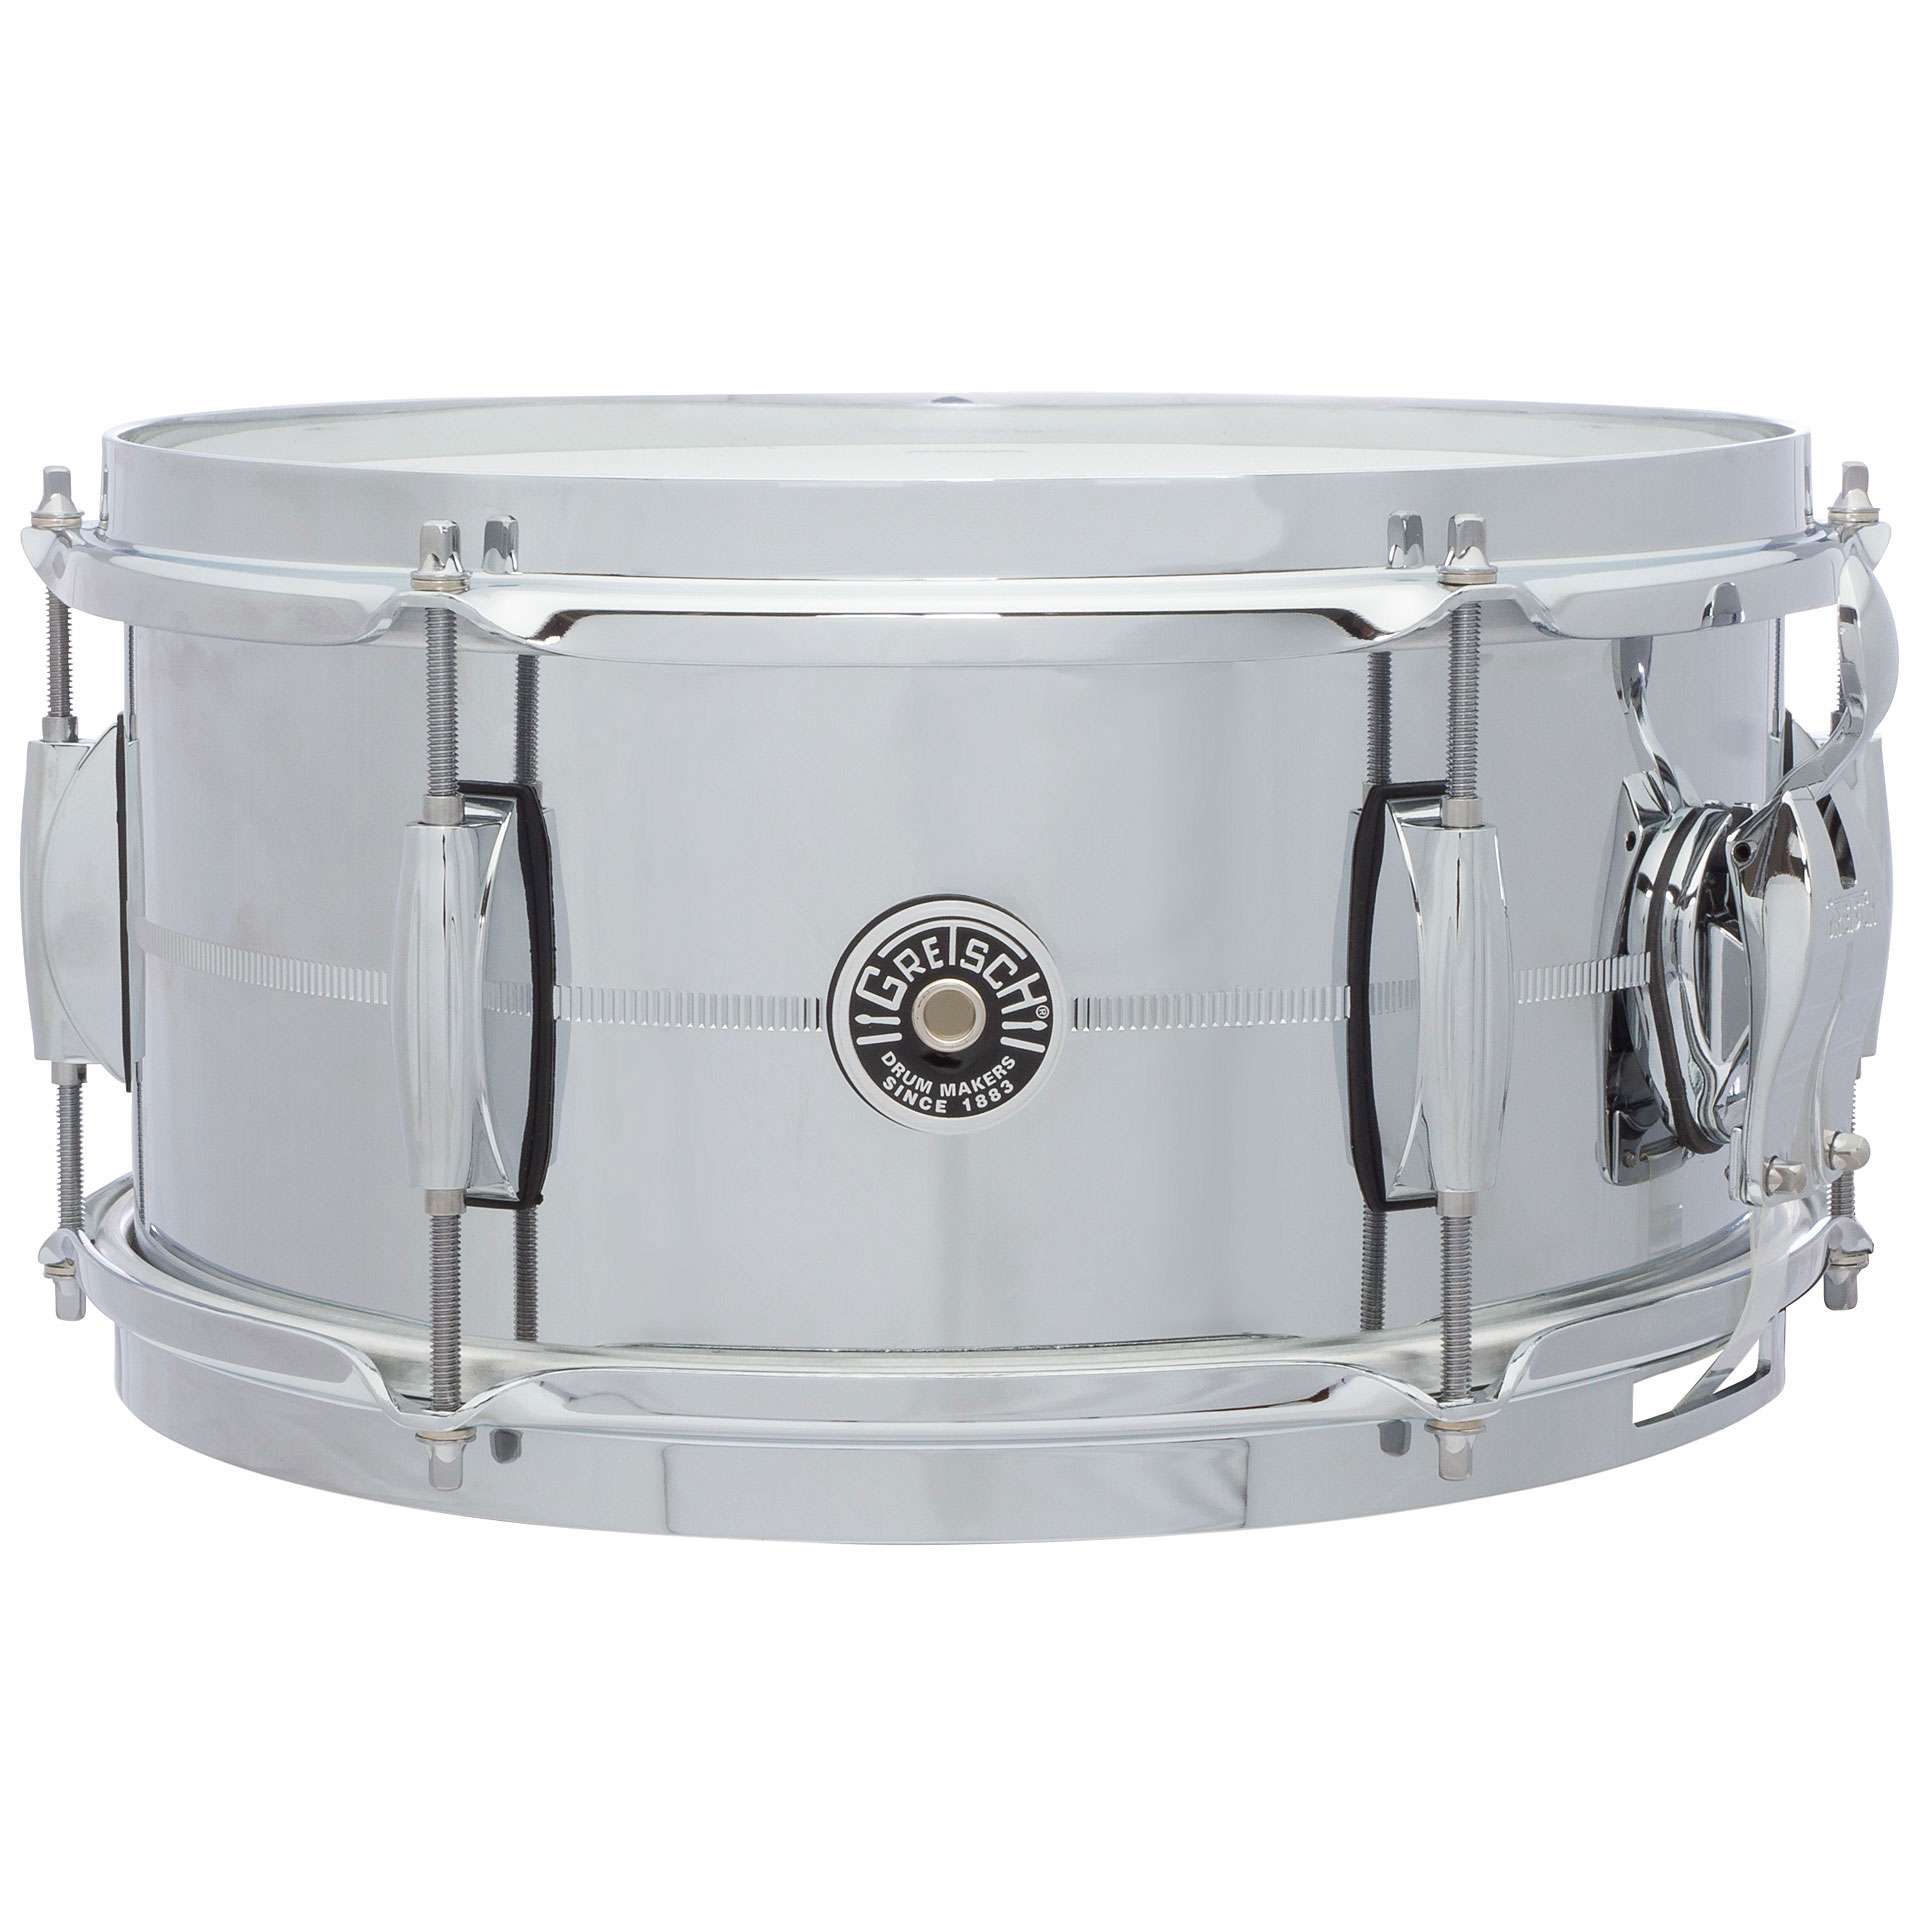 "Gretsch 6"" x 12"" USA Brooklyn Metal Chrome Steel Snare Drum"